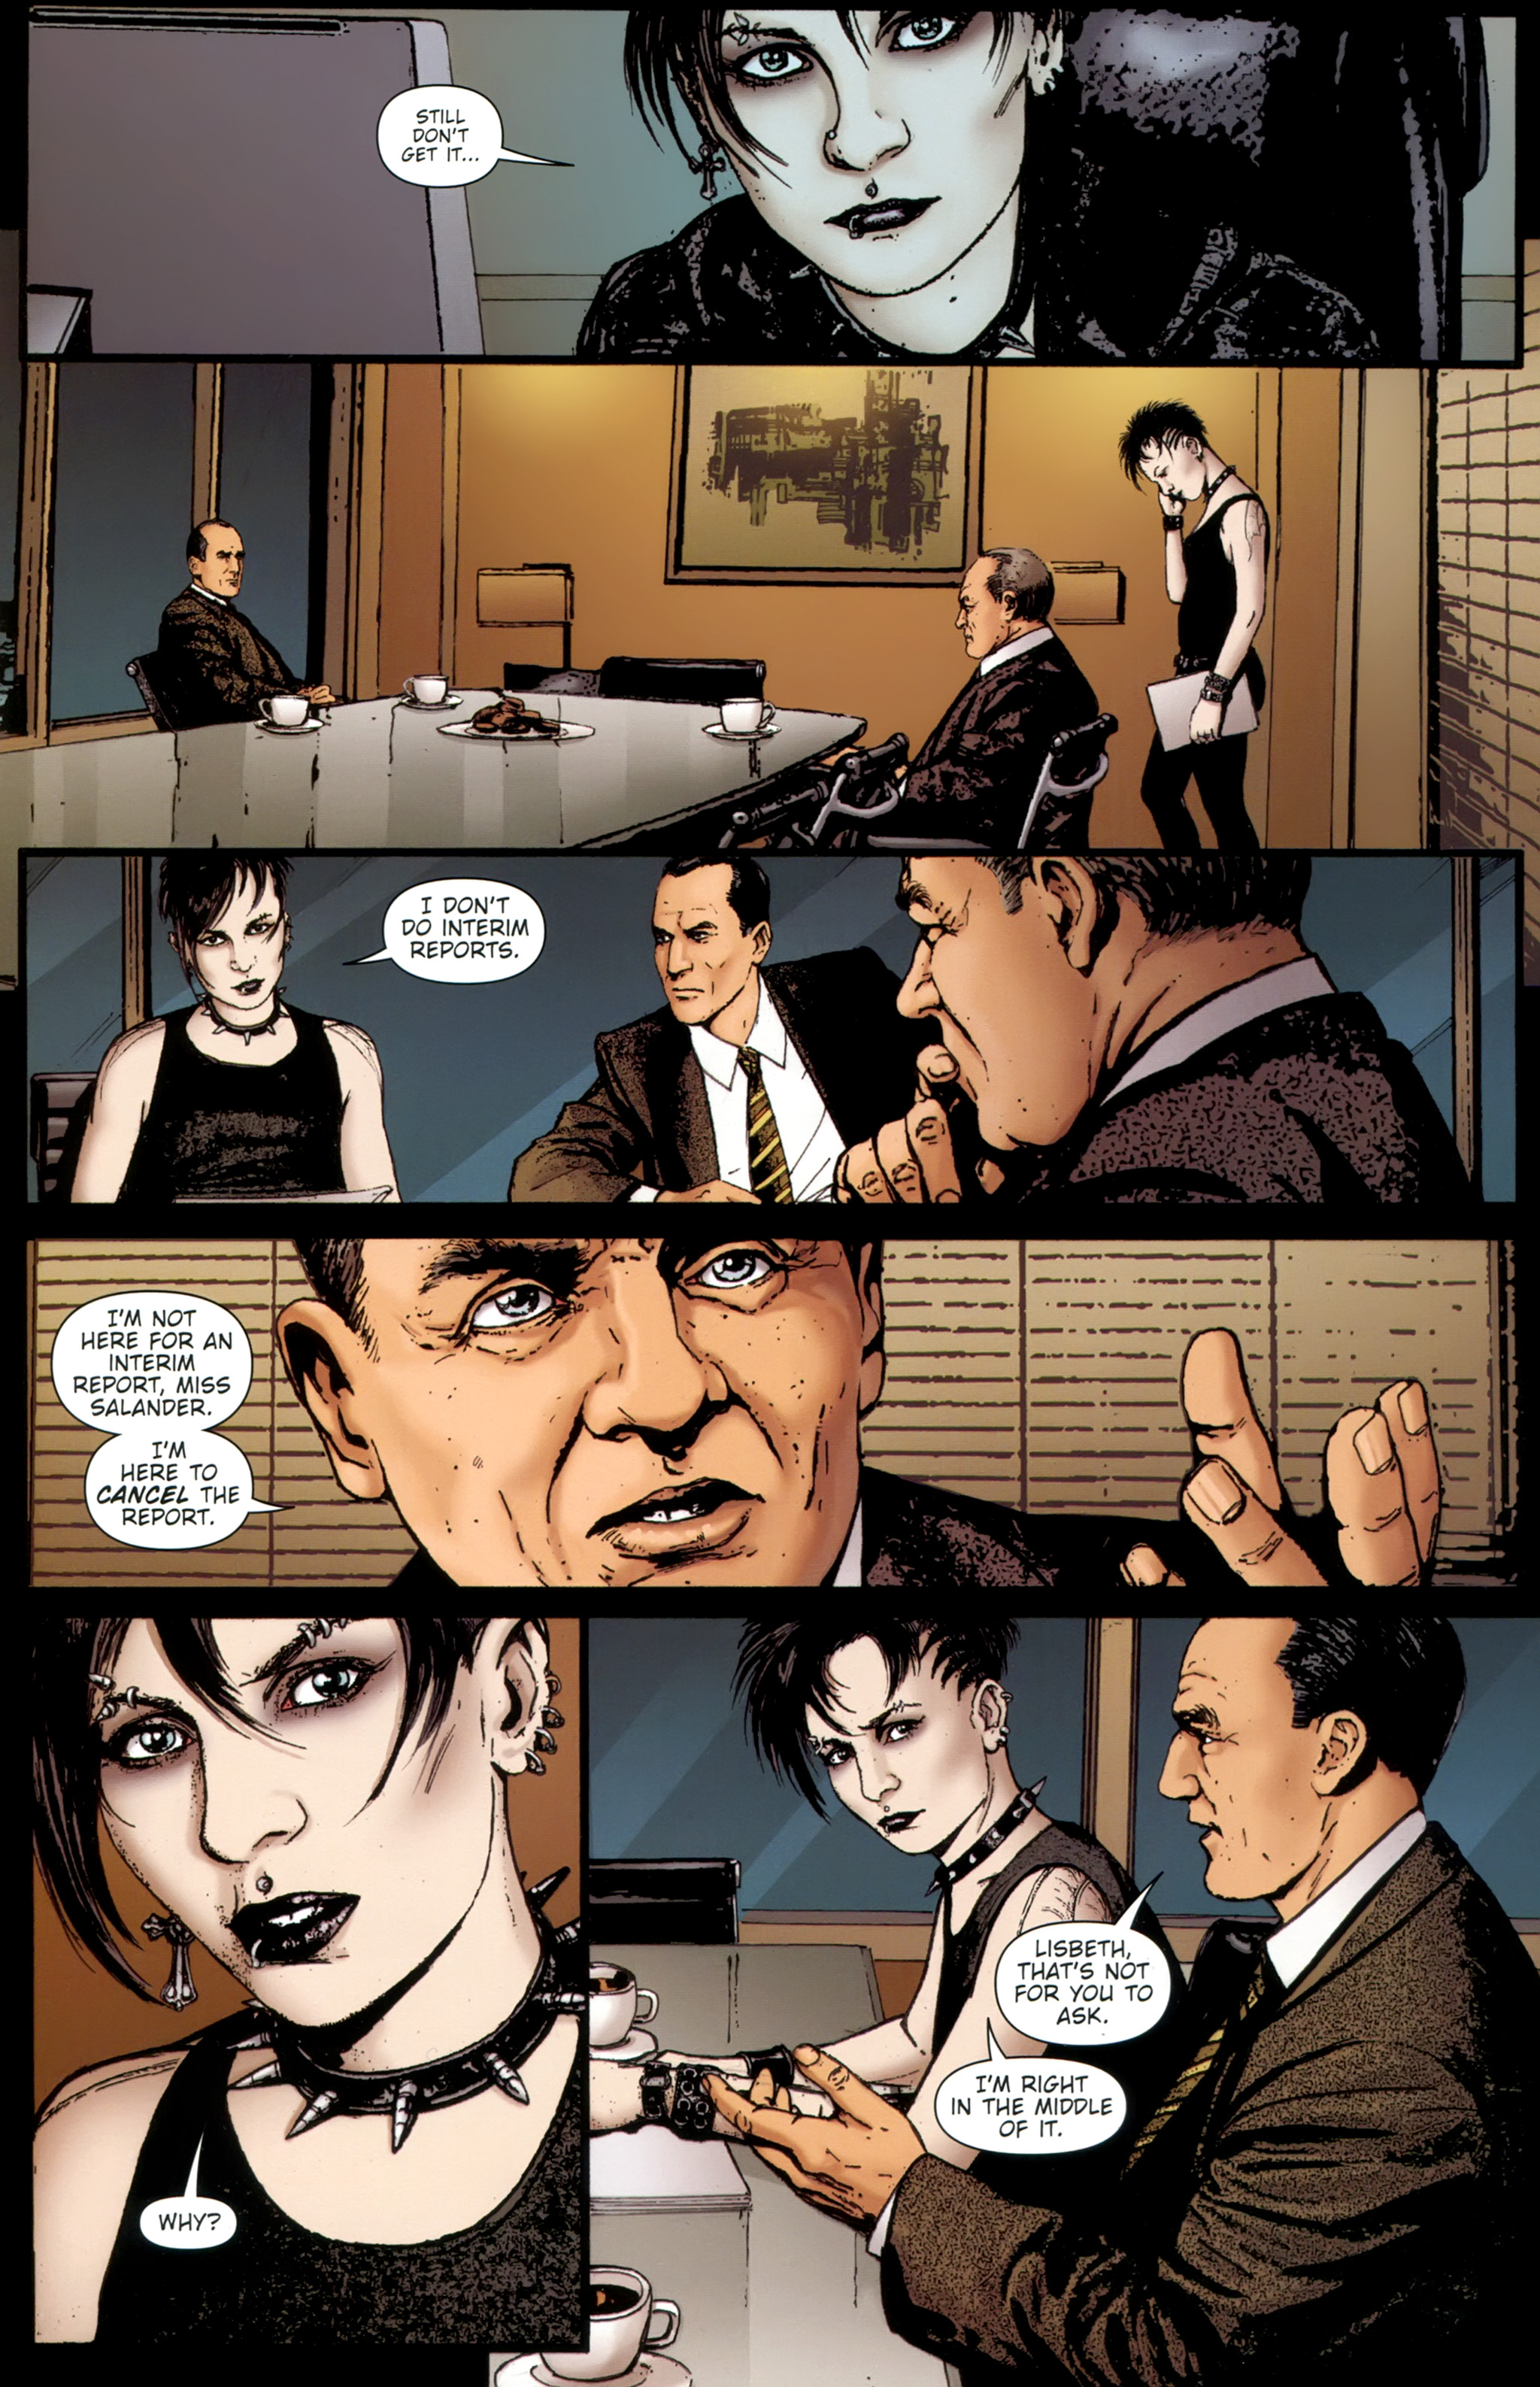 Read online The Girl With the Dragon Tattoo comic -  Issue # TPB 1 - 78